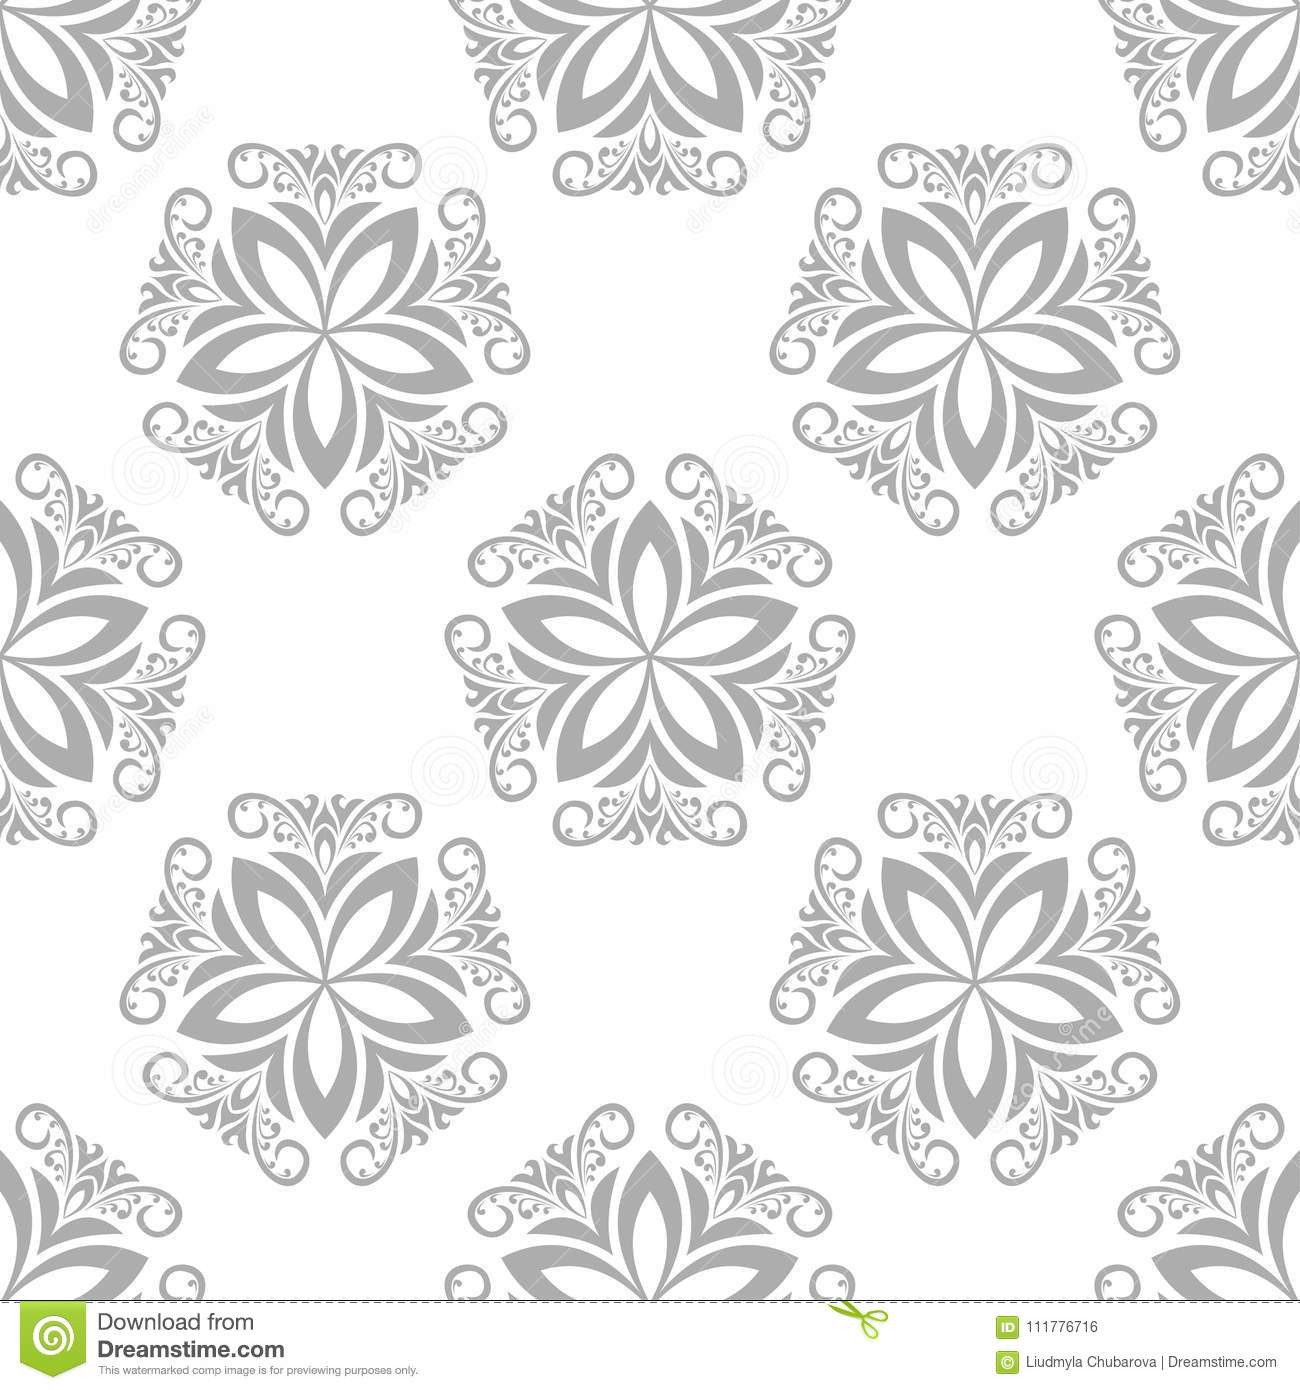 Floral background with gray seamless pattern